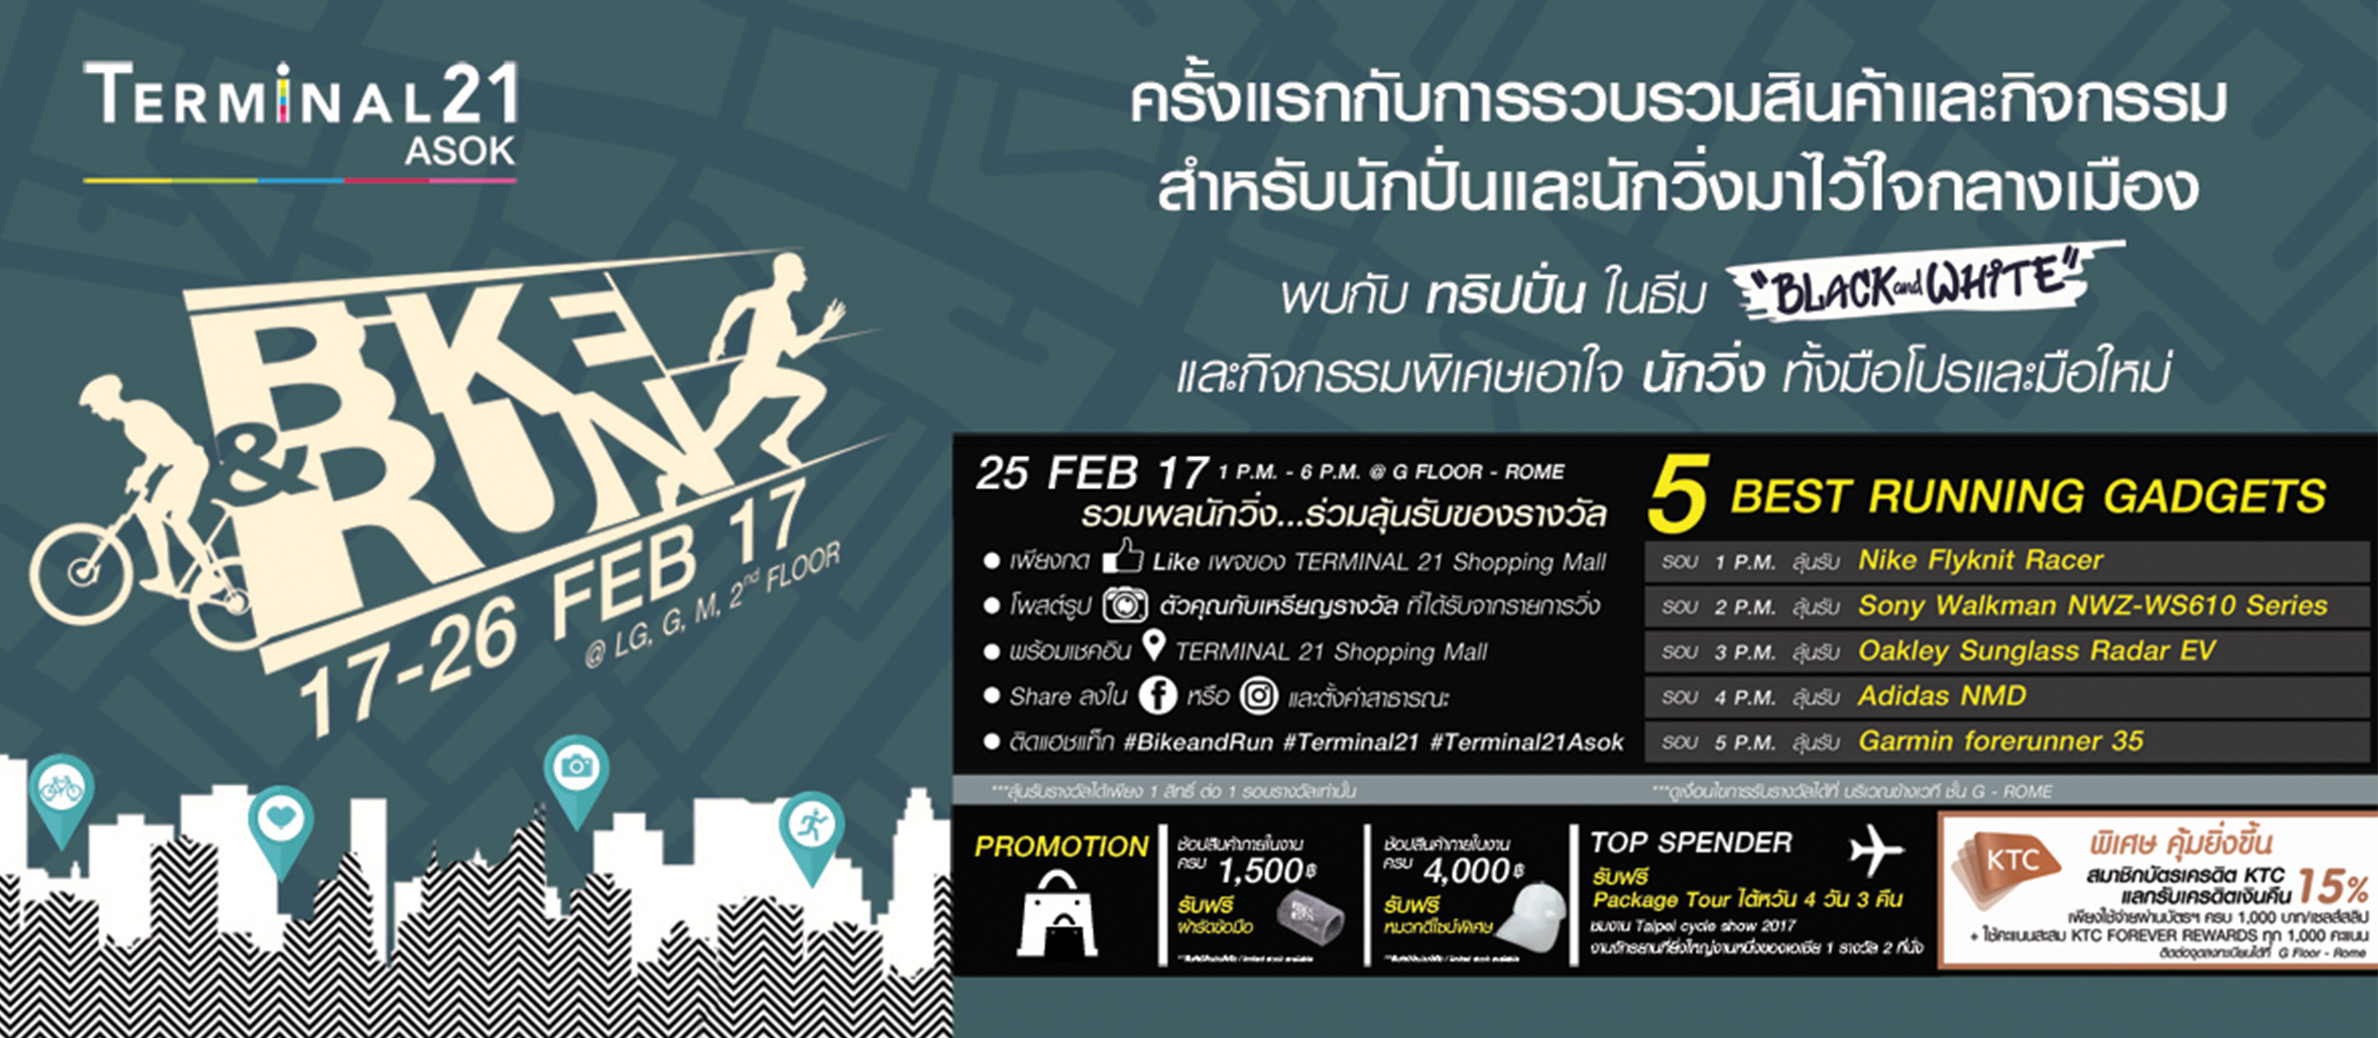 http://www.terminal21.co.th/asok/uploaded/content/picture2_150217102543288.jpg